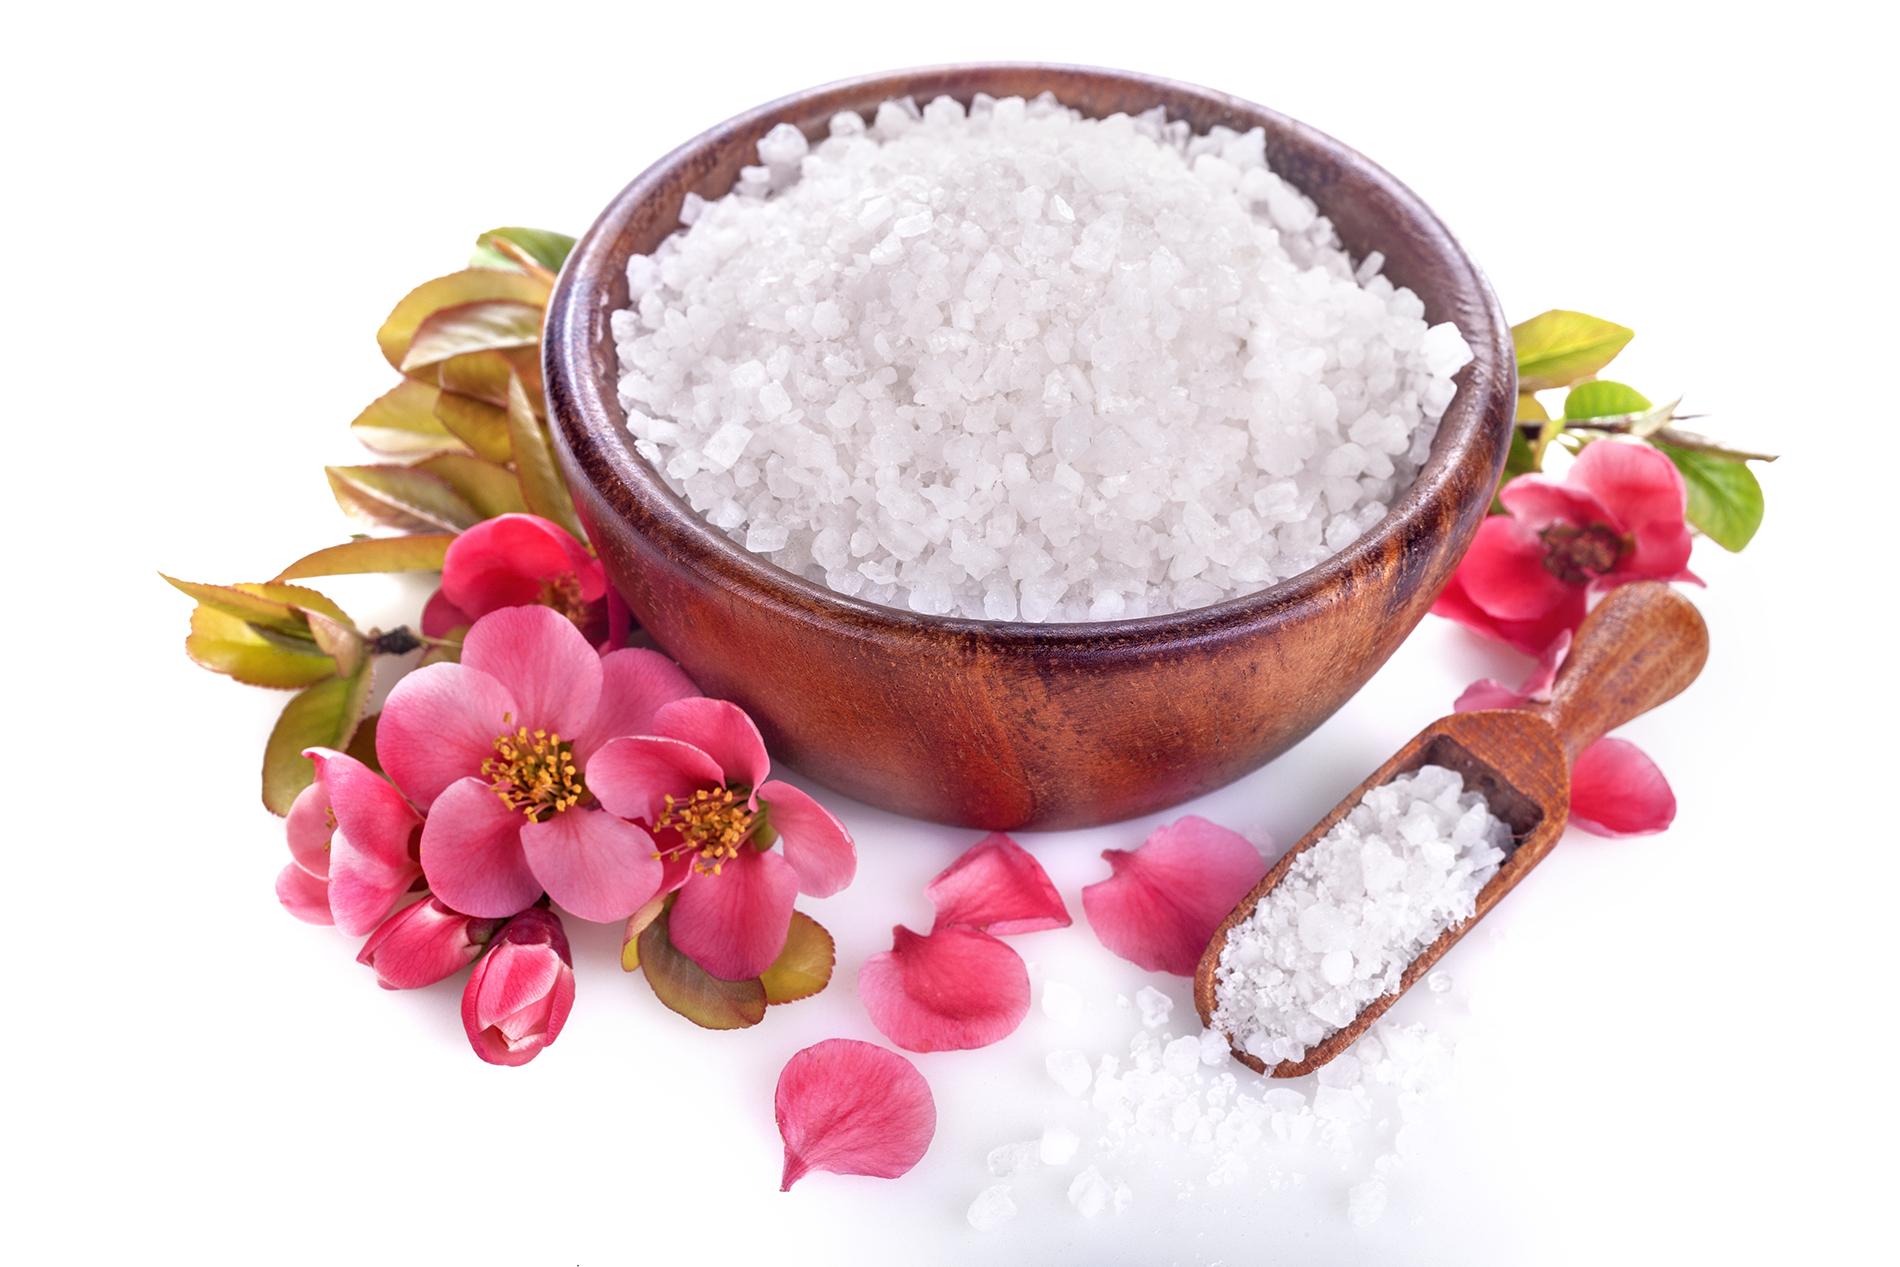 Red flowers in a wooden bowl of bath salts 53911